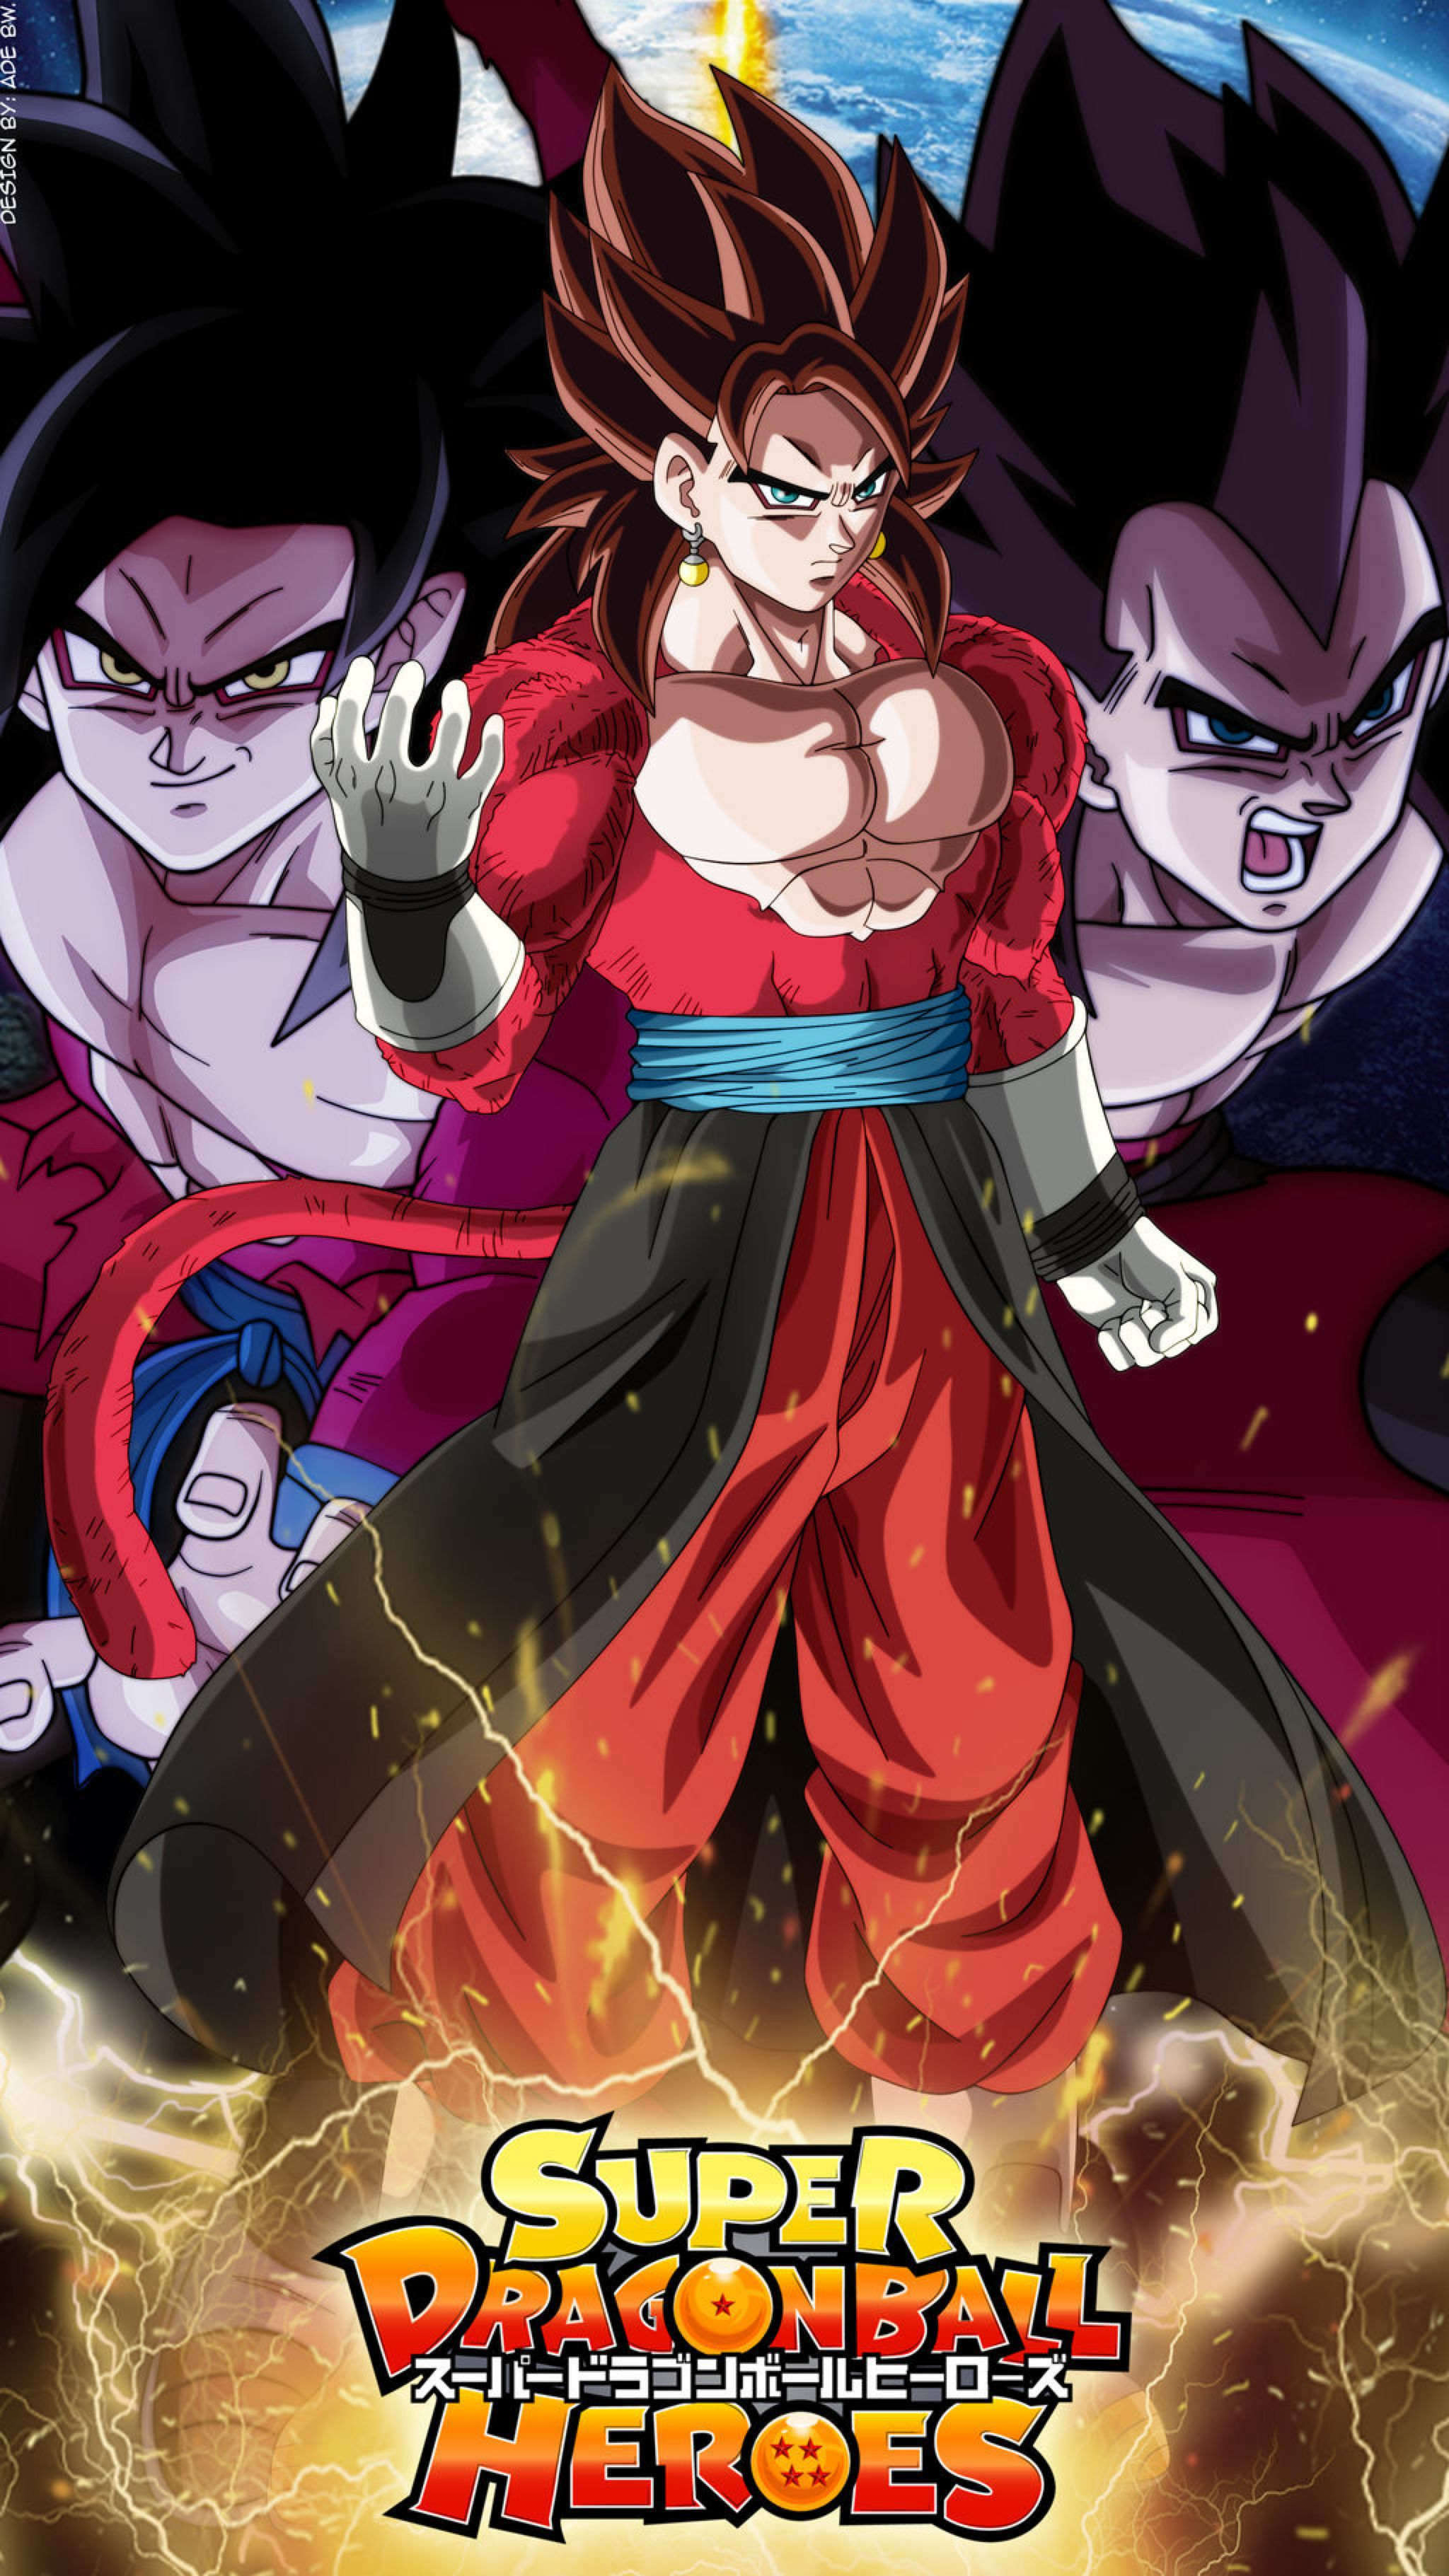 Xeno Vegito Ssj4 By Adb3388 On Deviantart Dragon Ball Super Manga Anime Dragon Ball Super Dragon Ball Art